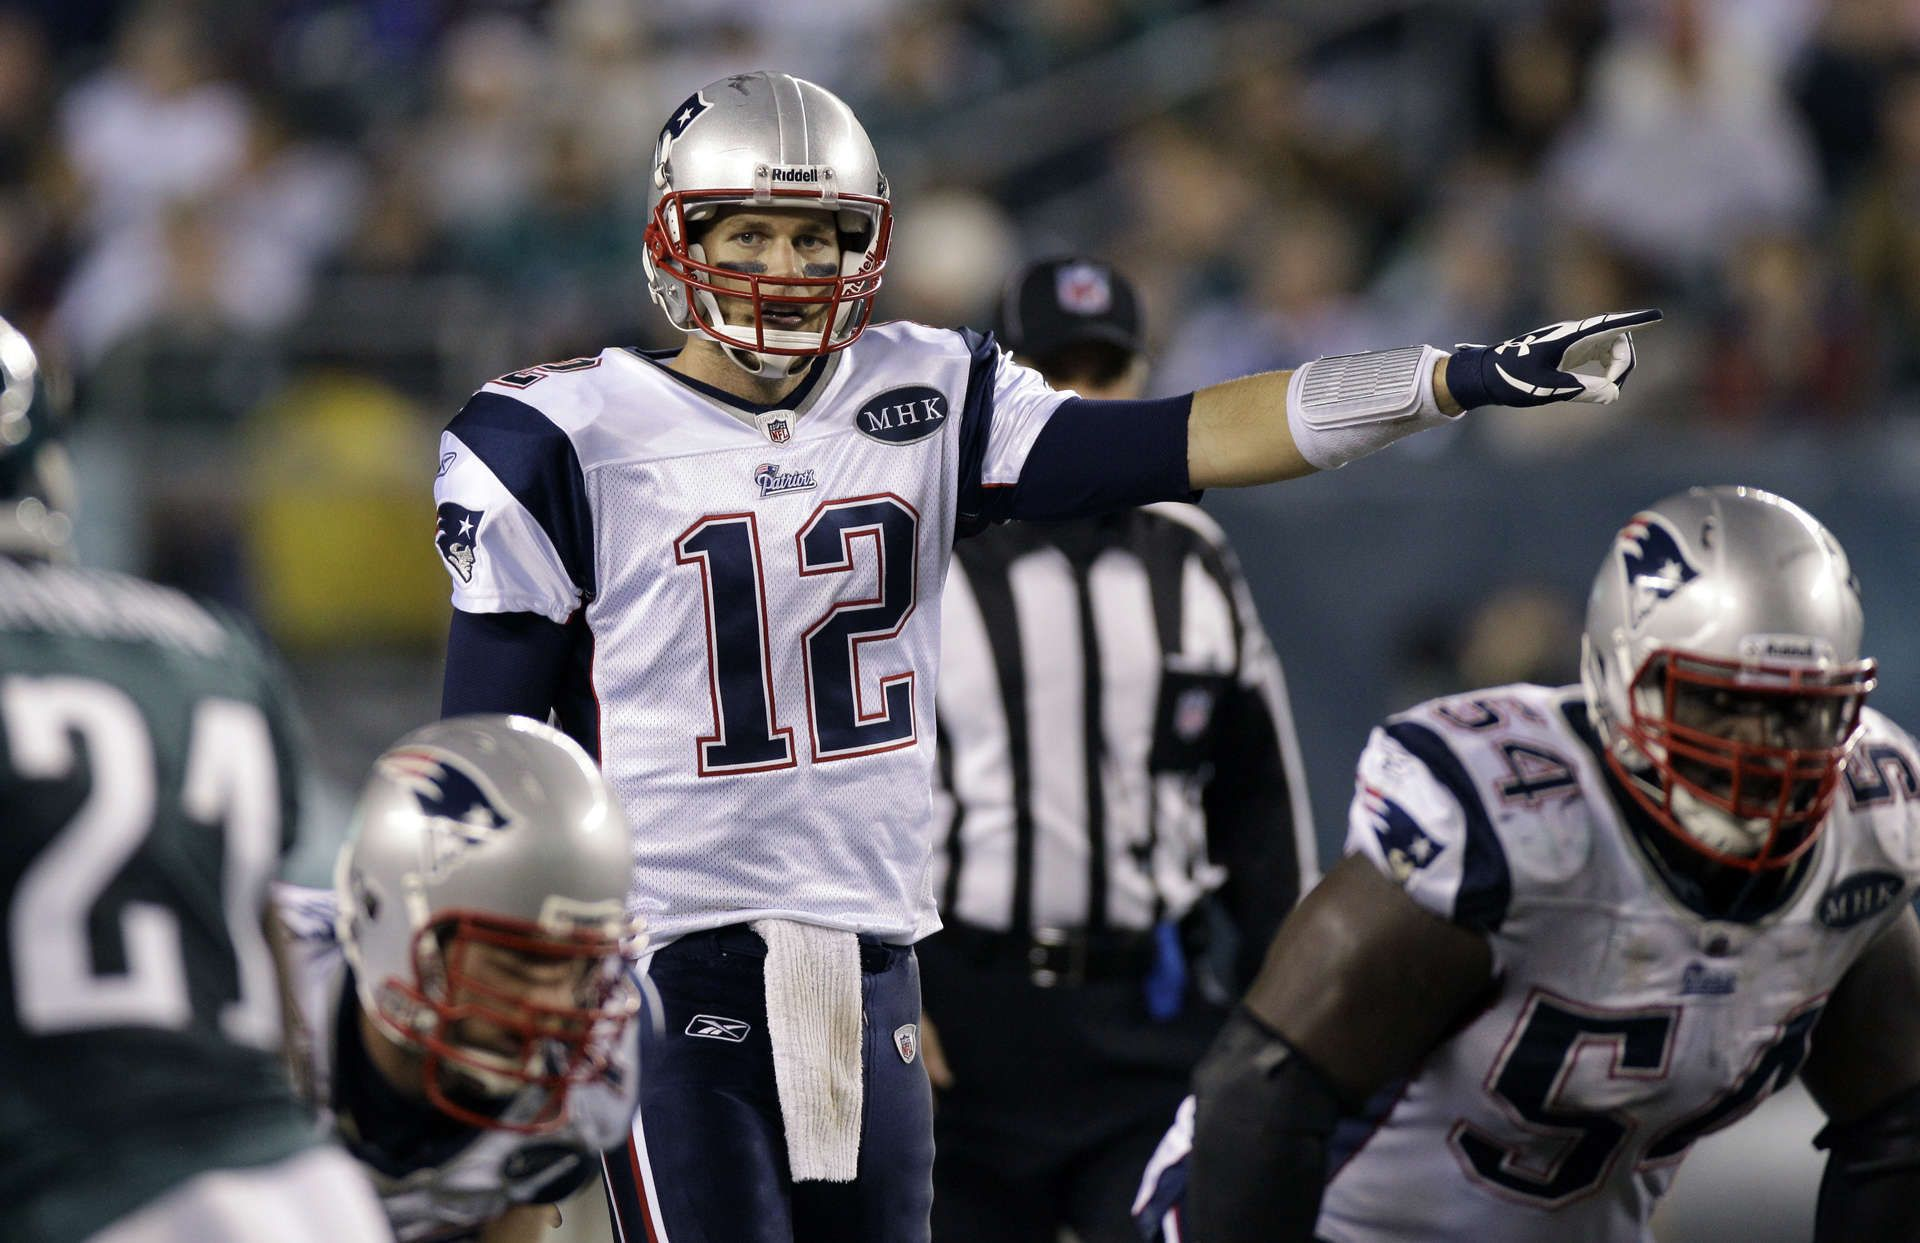 Download Tom Brady Patriots 2013 In High Quality Wallpaper